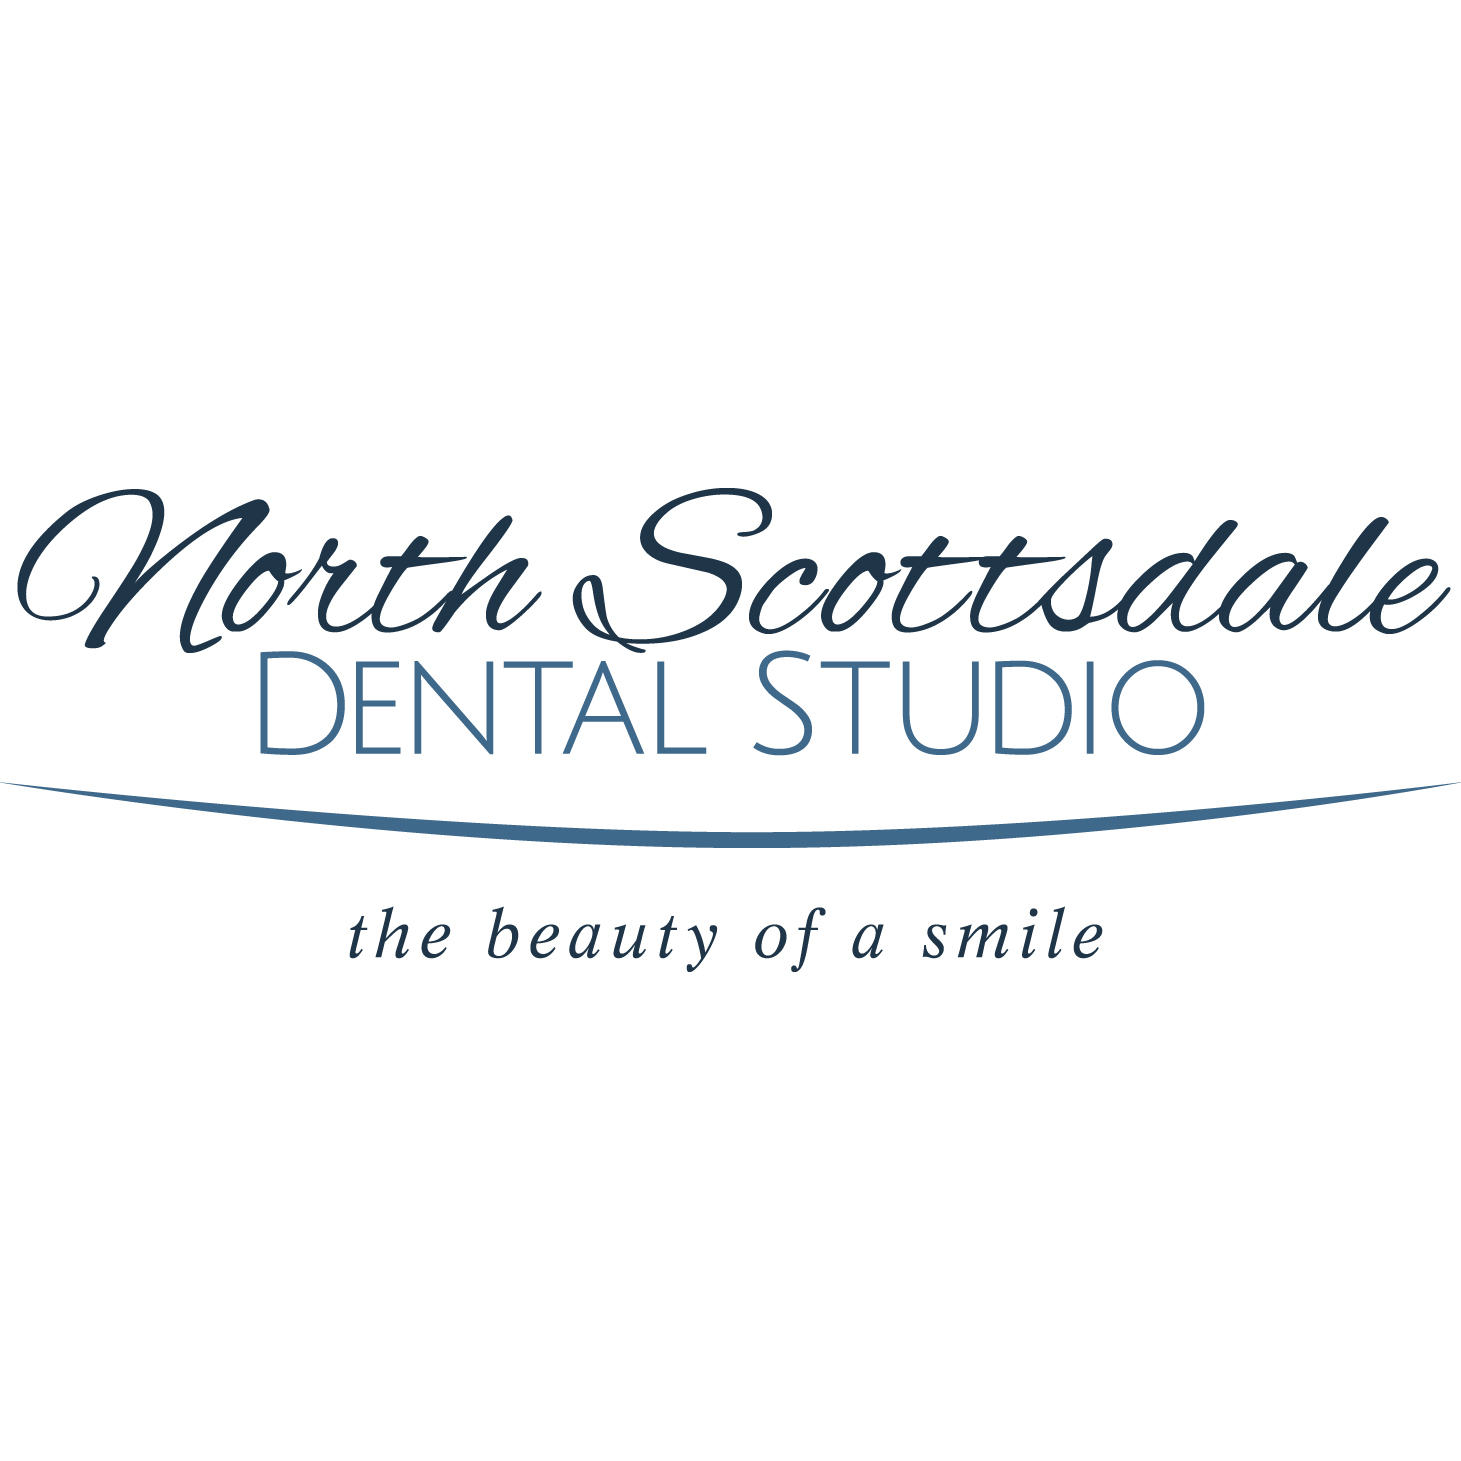 North Scottsdale Dental Studio